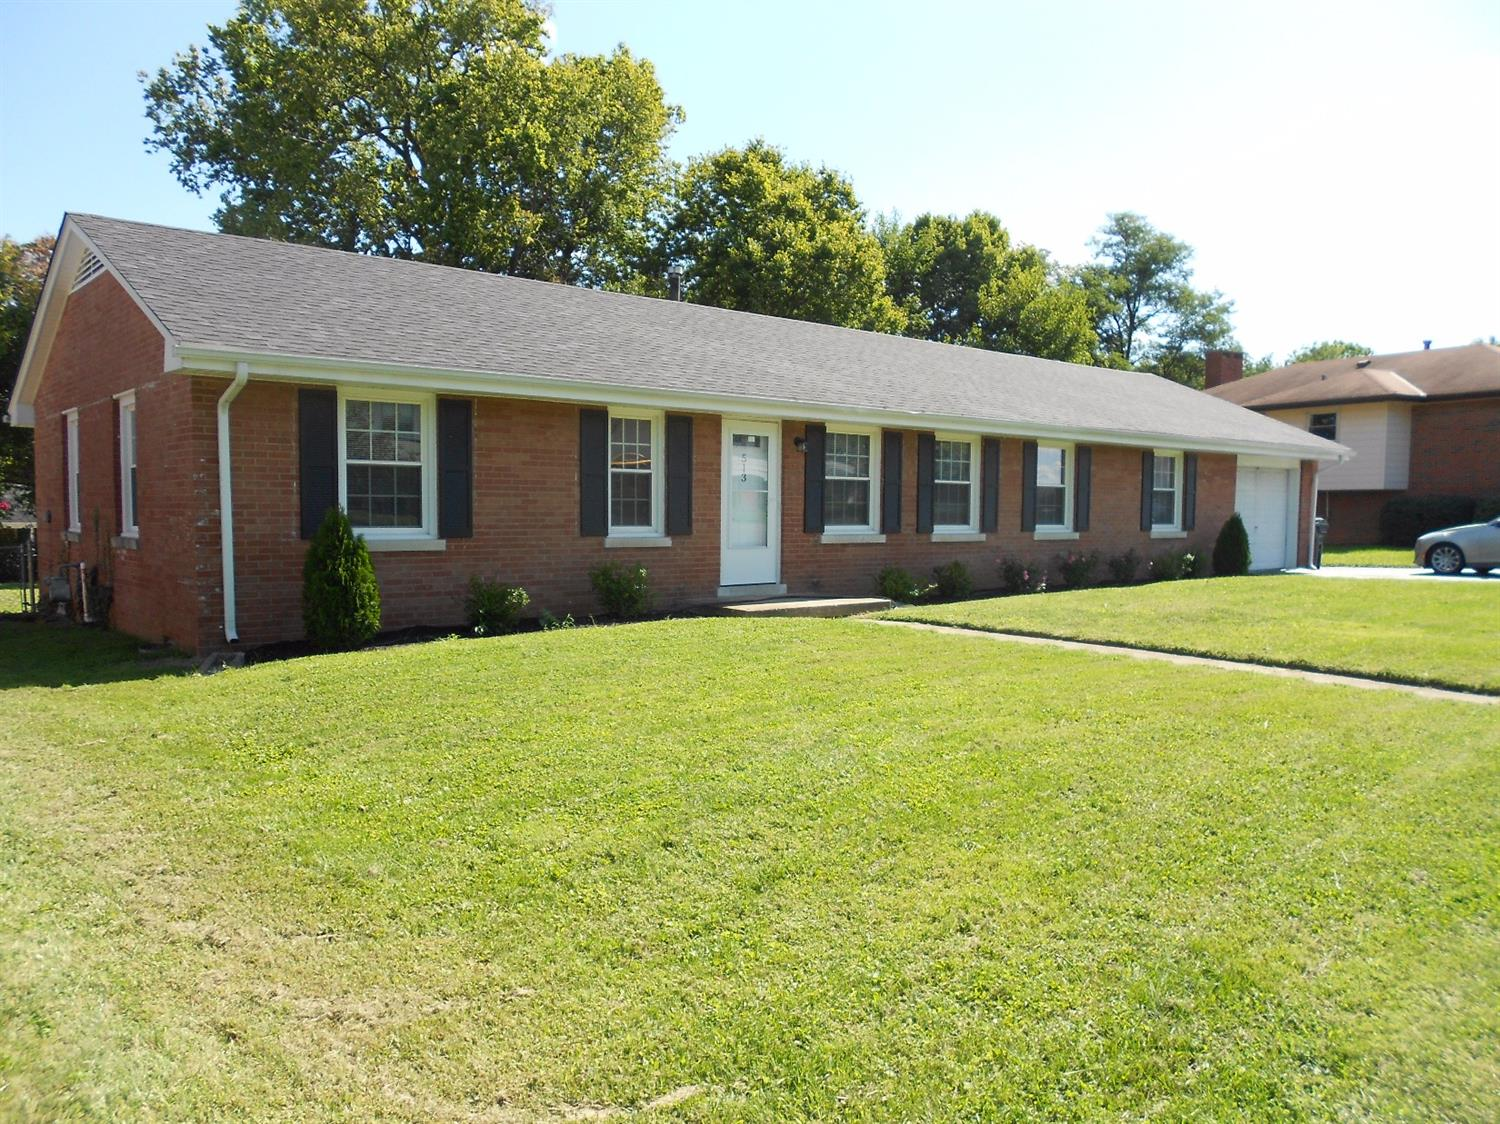 Beautifully%20renovated%20brick%20ranch%20home%20in%20one%20of%20Lexington's%20most%20convenient%20neighborhoods.%20Updates%20include%20kitchen%20cabinets,%20granite%20counter%20tops,%20appliances,tile%20back%20splash,%20refinished%20hardwood%20floors%20through%20out,%20a%20new%20full%20bathroom,%20new%20fixtures%20in%20all%20bathrooms,%20new%20interior%20doors,%20insulated%20double%20pane%20vinyl%20replacement%20windows,%20and%20so%20much%20more.%20Even%20comes%20with%20a%20one%20year%20home%20warranty%20from%20HMS%20Home%20Warranty%20Co.%20This%20is%20truly%20a%20MUST%20SEE!